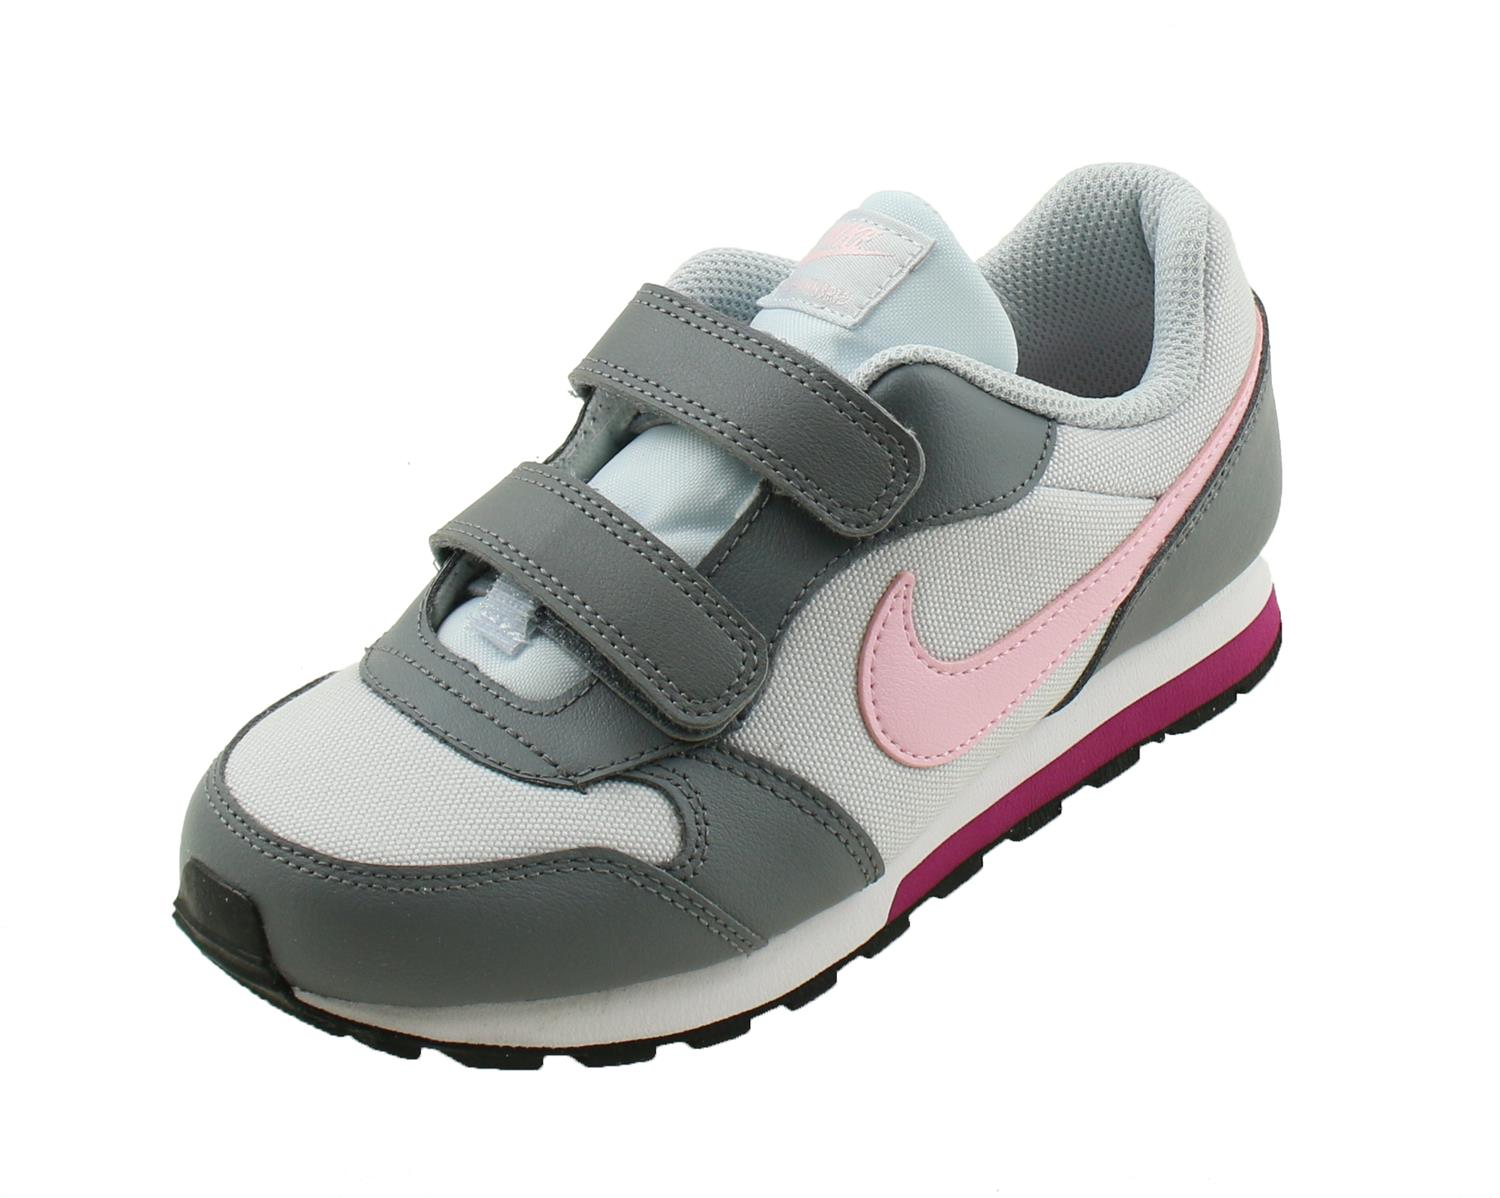 newest collection 308b9 8d9e3 Nike MD Runner 2 (PS) Junior. 807320 017 PURE PLATINUM PINK FOAM -C